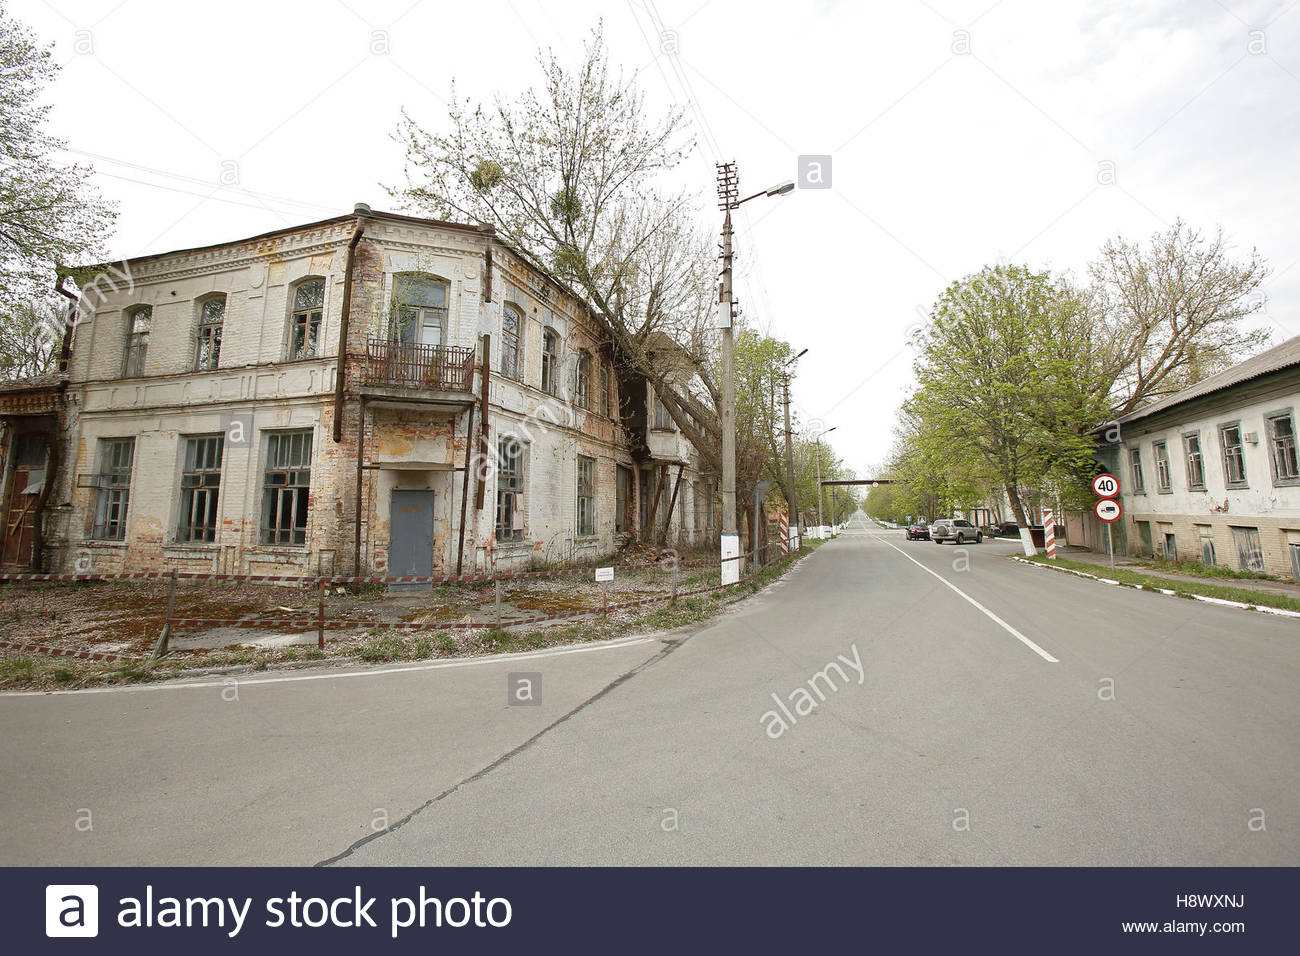 Abandoned city of Chernobyl - Ukraine - Stock Image